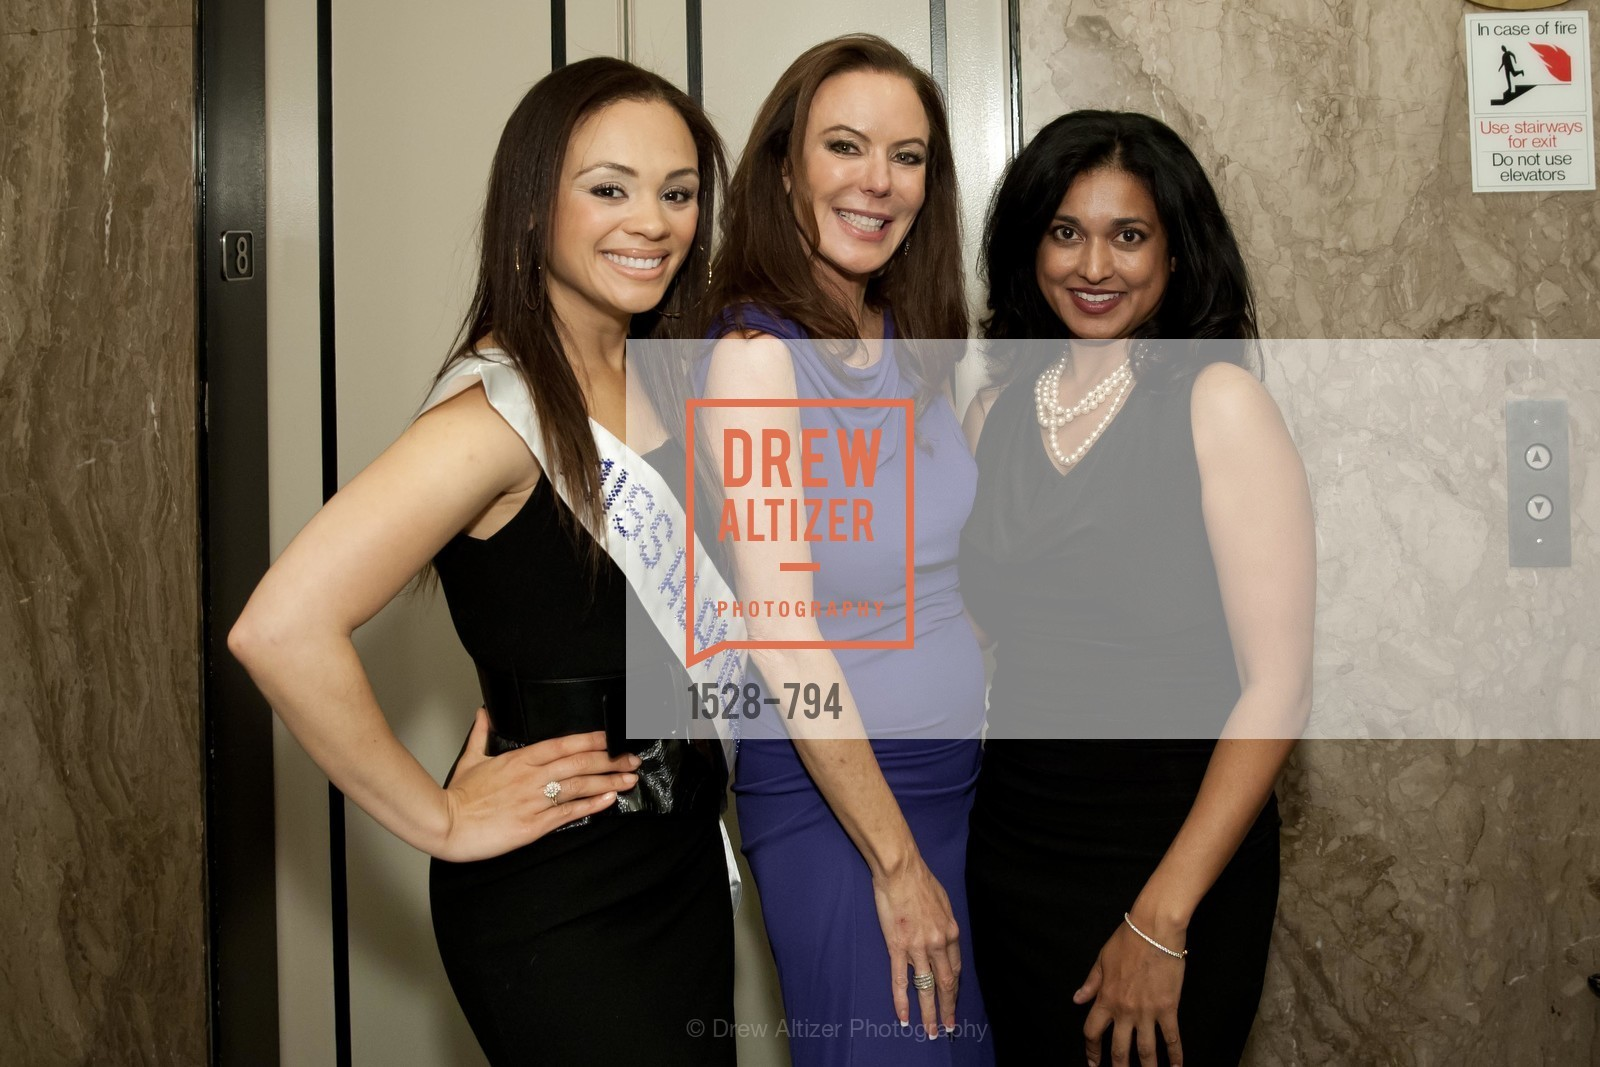 Jessica Robinson, Margaret Mitchell, Shilpa Vichare, EPI CENTER MedSpa Anniversary and Launch of REPLETE - Evening Celebration, US, April 22nd, 2015,Drew Altizer, Drew Altizer Photography, full-service agency, private events, San Francisco photographer, photographer california